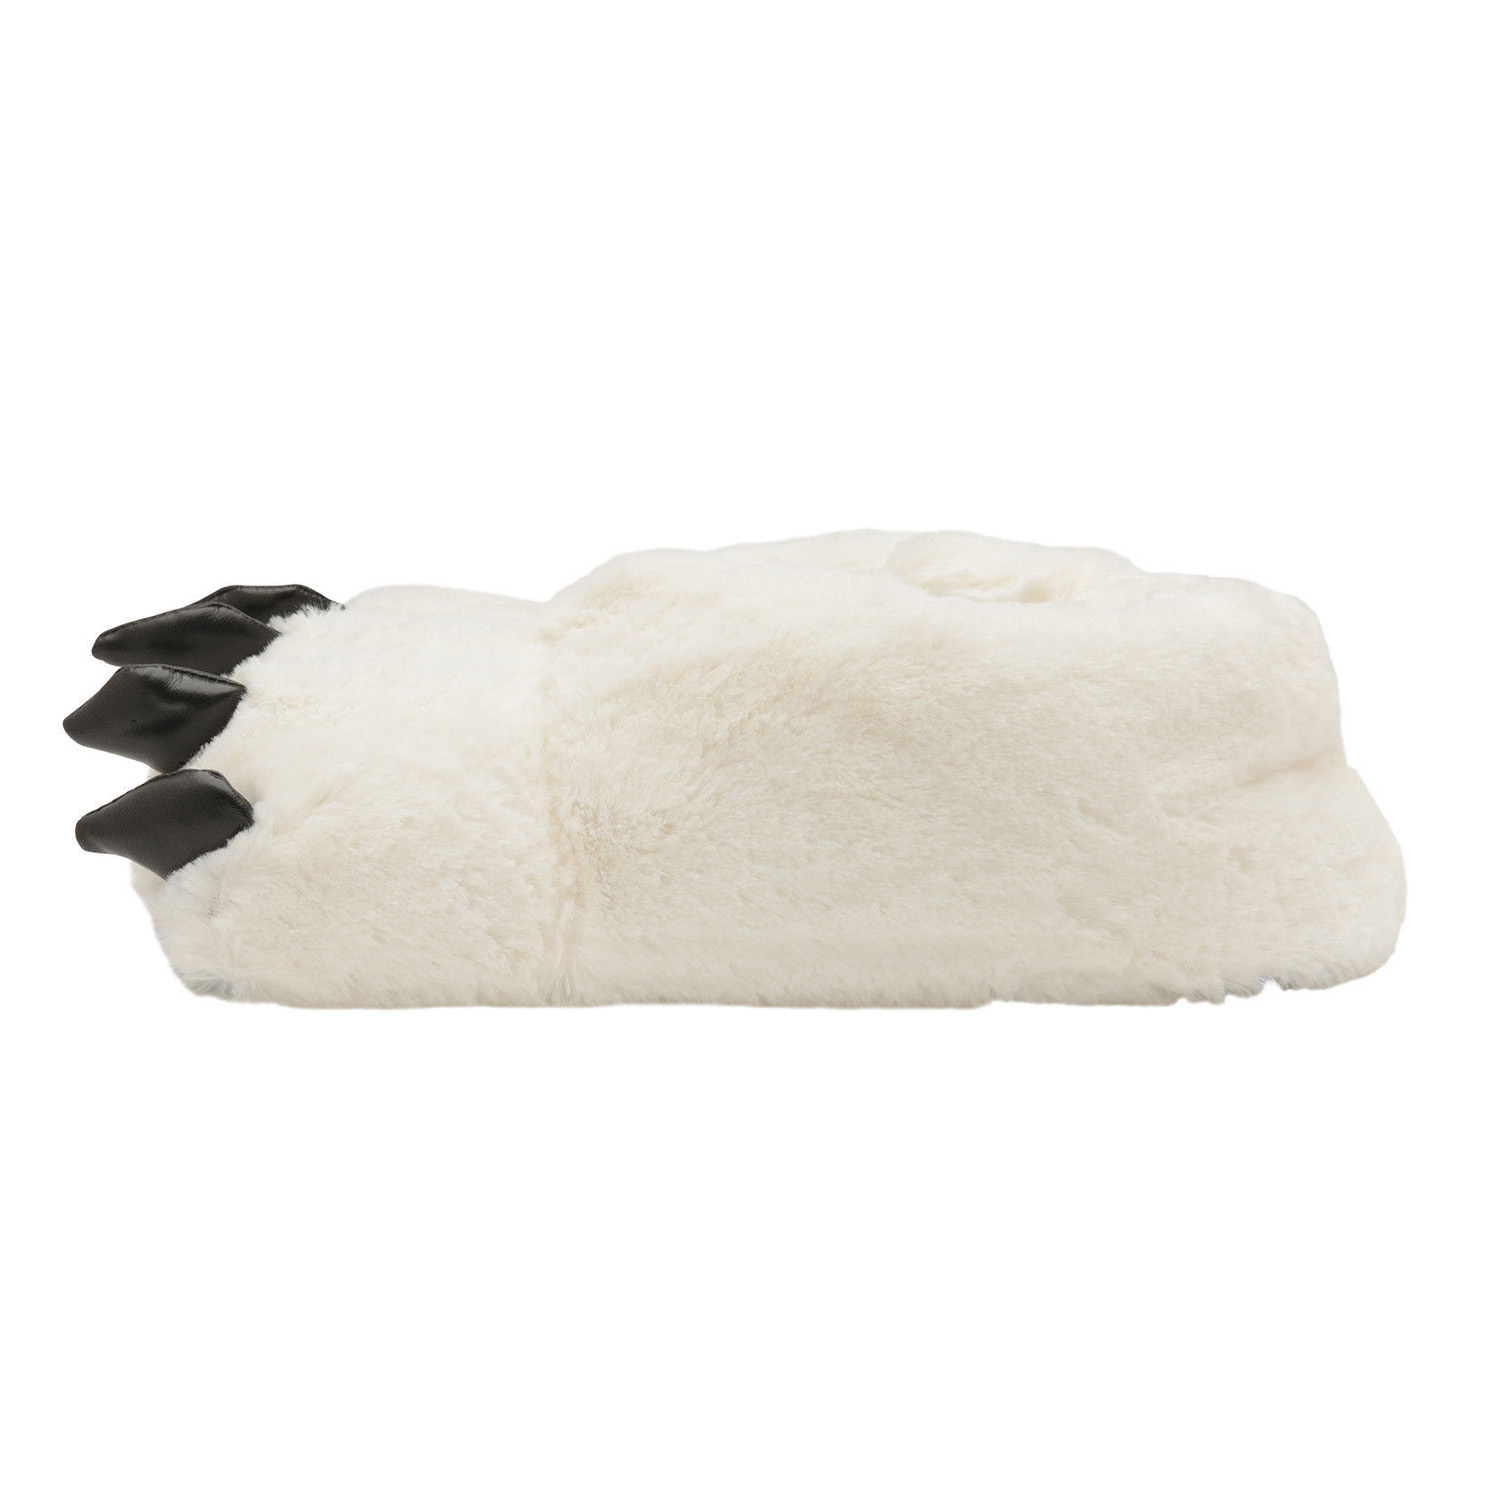 Adults-Soft-3D-Animal-Slippers-Mens-Womens-Slip-On-Comfy-Novelty-Indoor-Footwear thumbnail 60